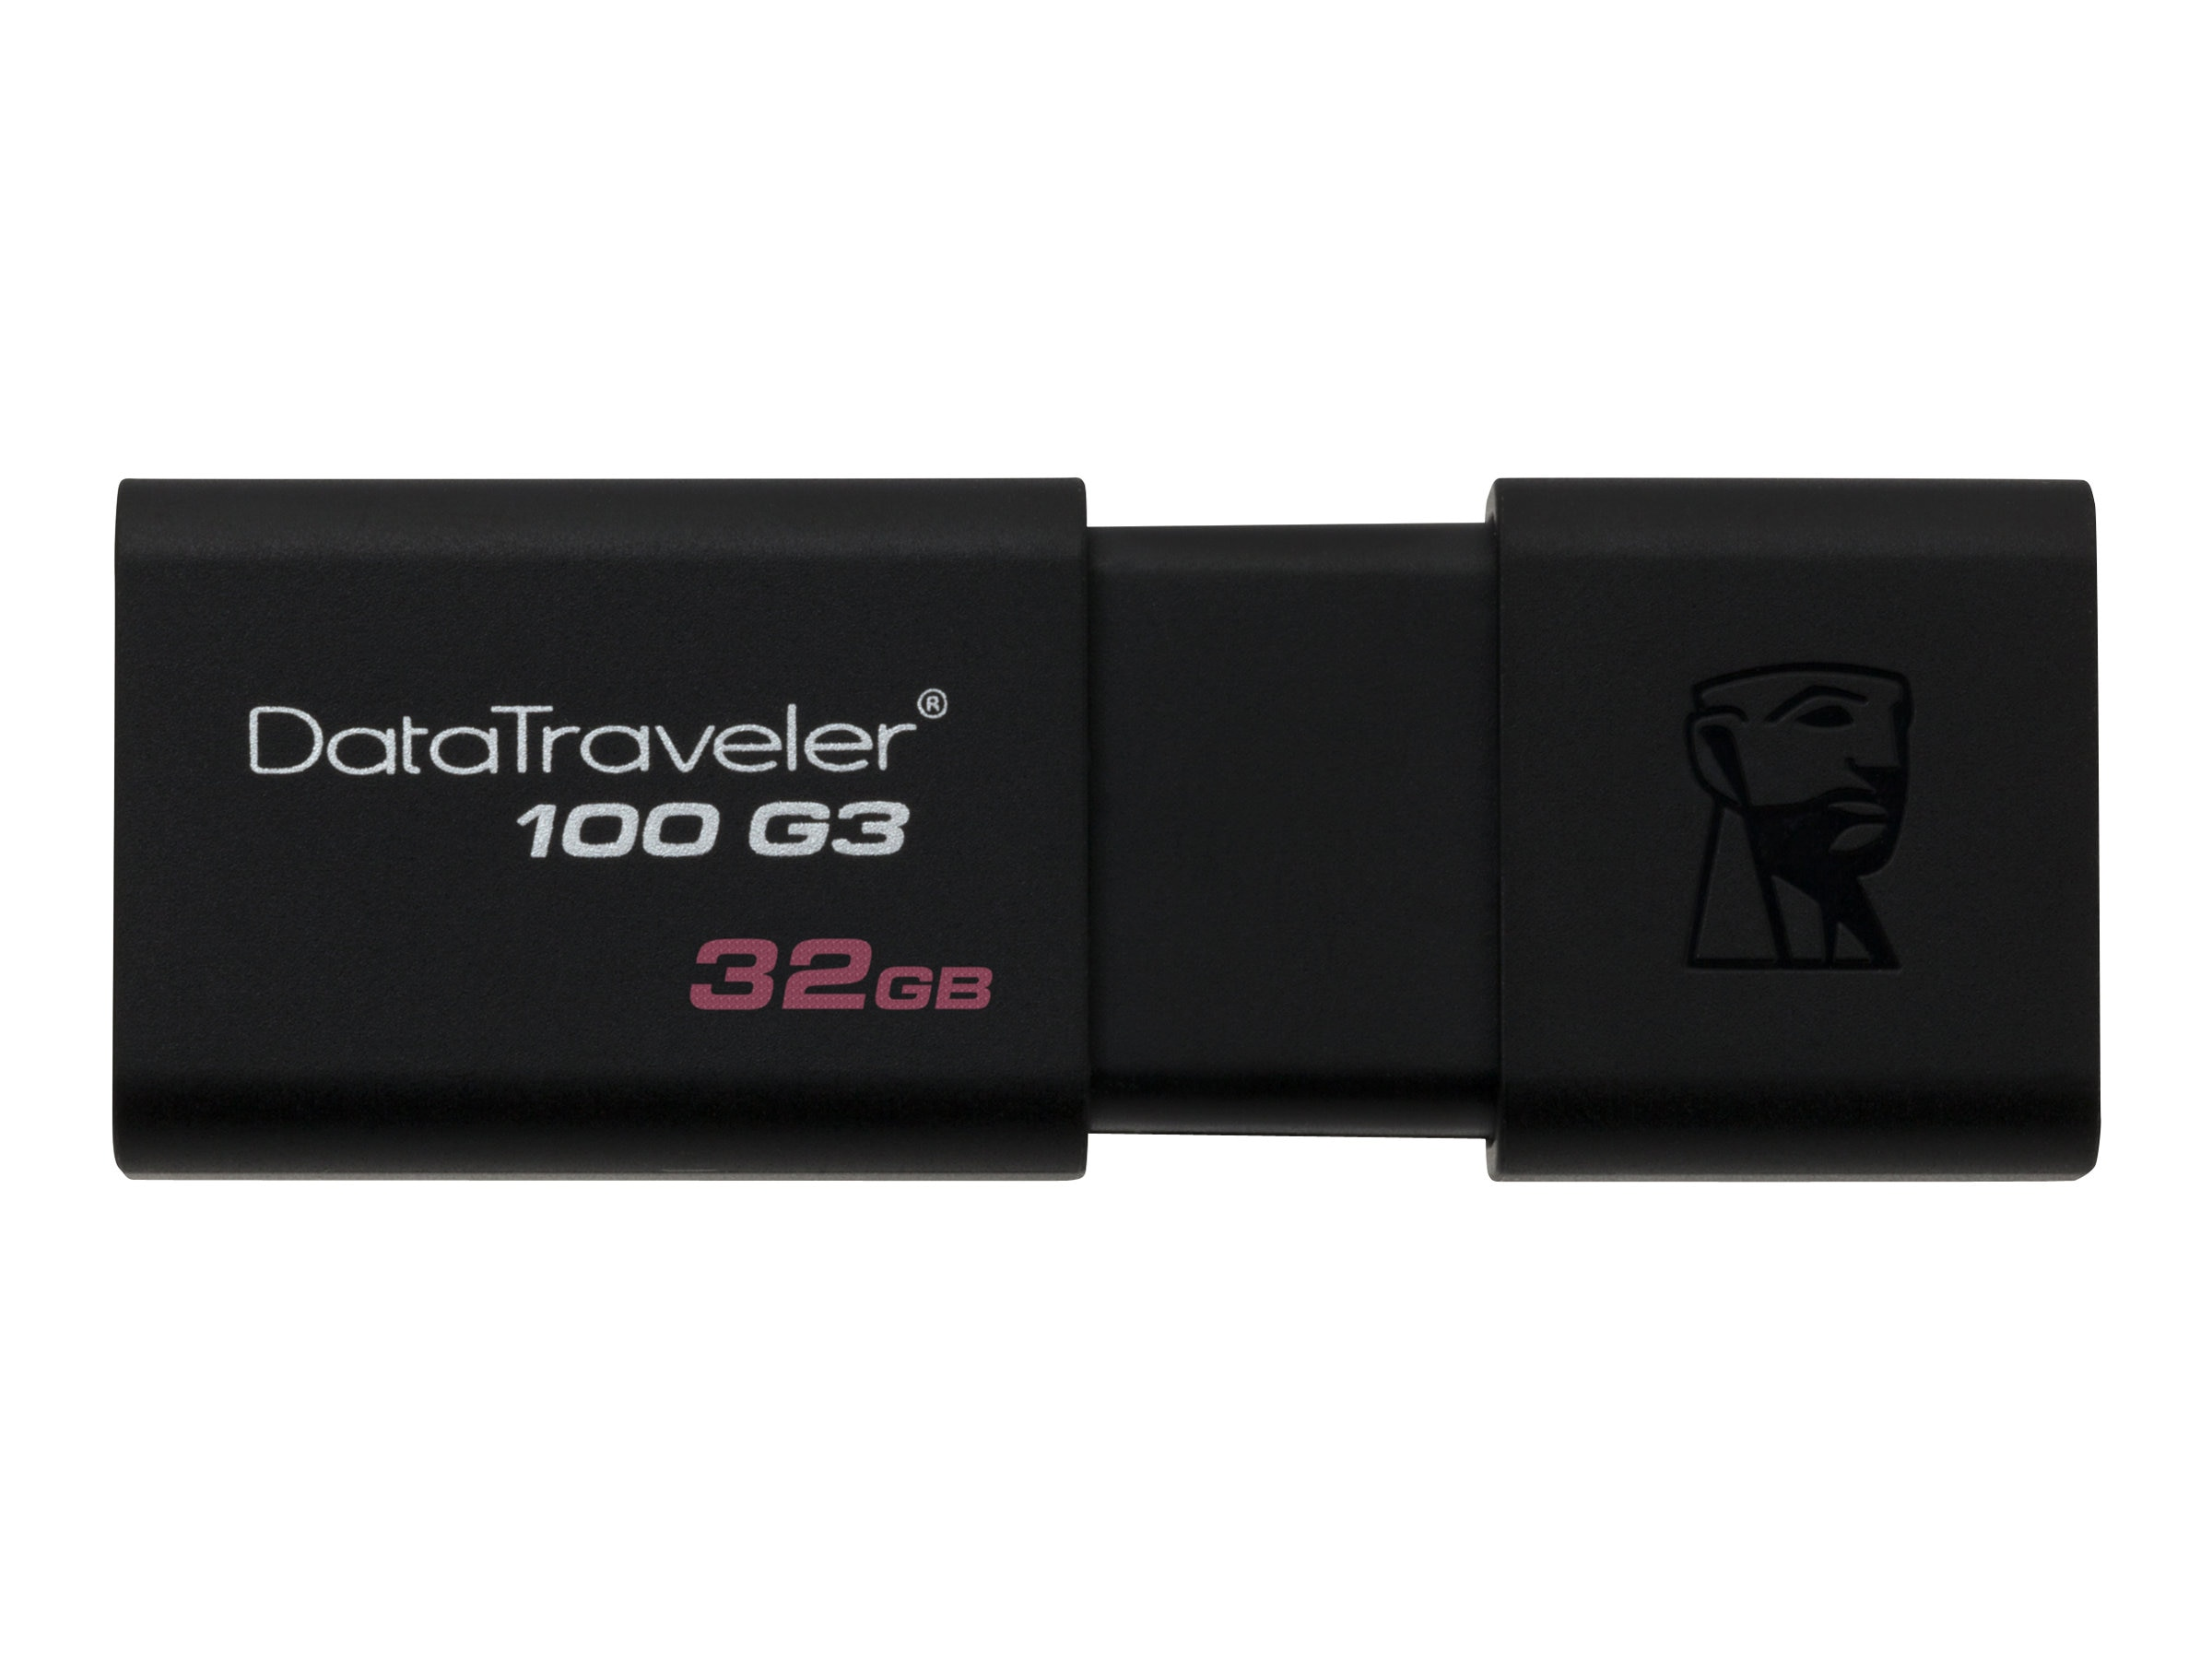 Kingston 32GB DataTraveler 100 G3 USB 3.0 Flash Drive, DT100G3/32GB, 15562815, Flash Drives